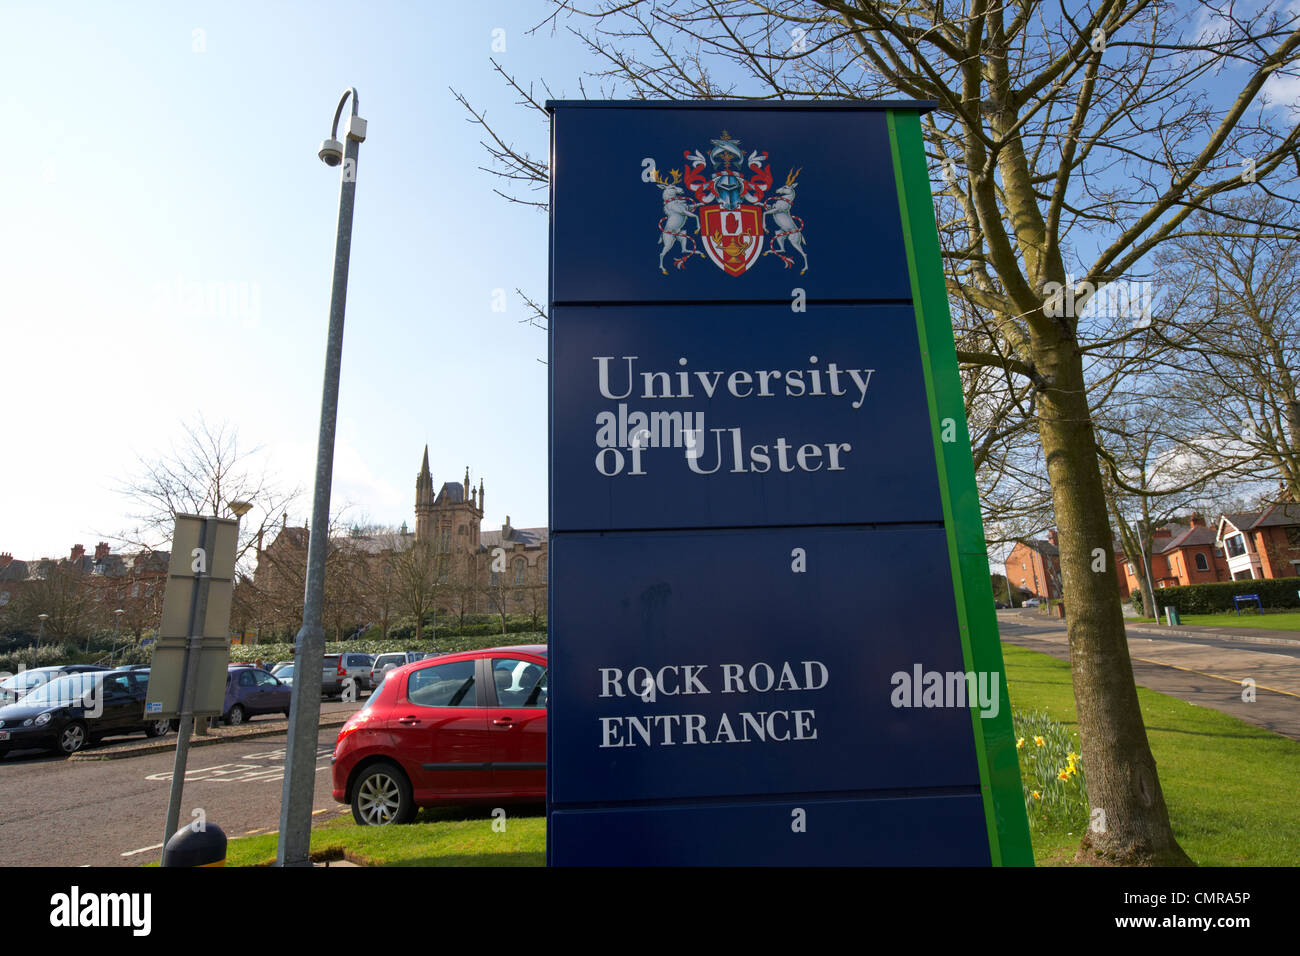 rock road entrance to the University of Ulster magee in Derry city county londonderry northern ireland uk. - Stock Image